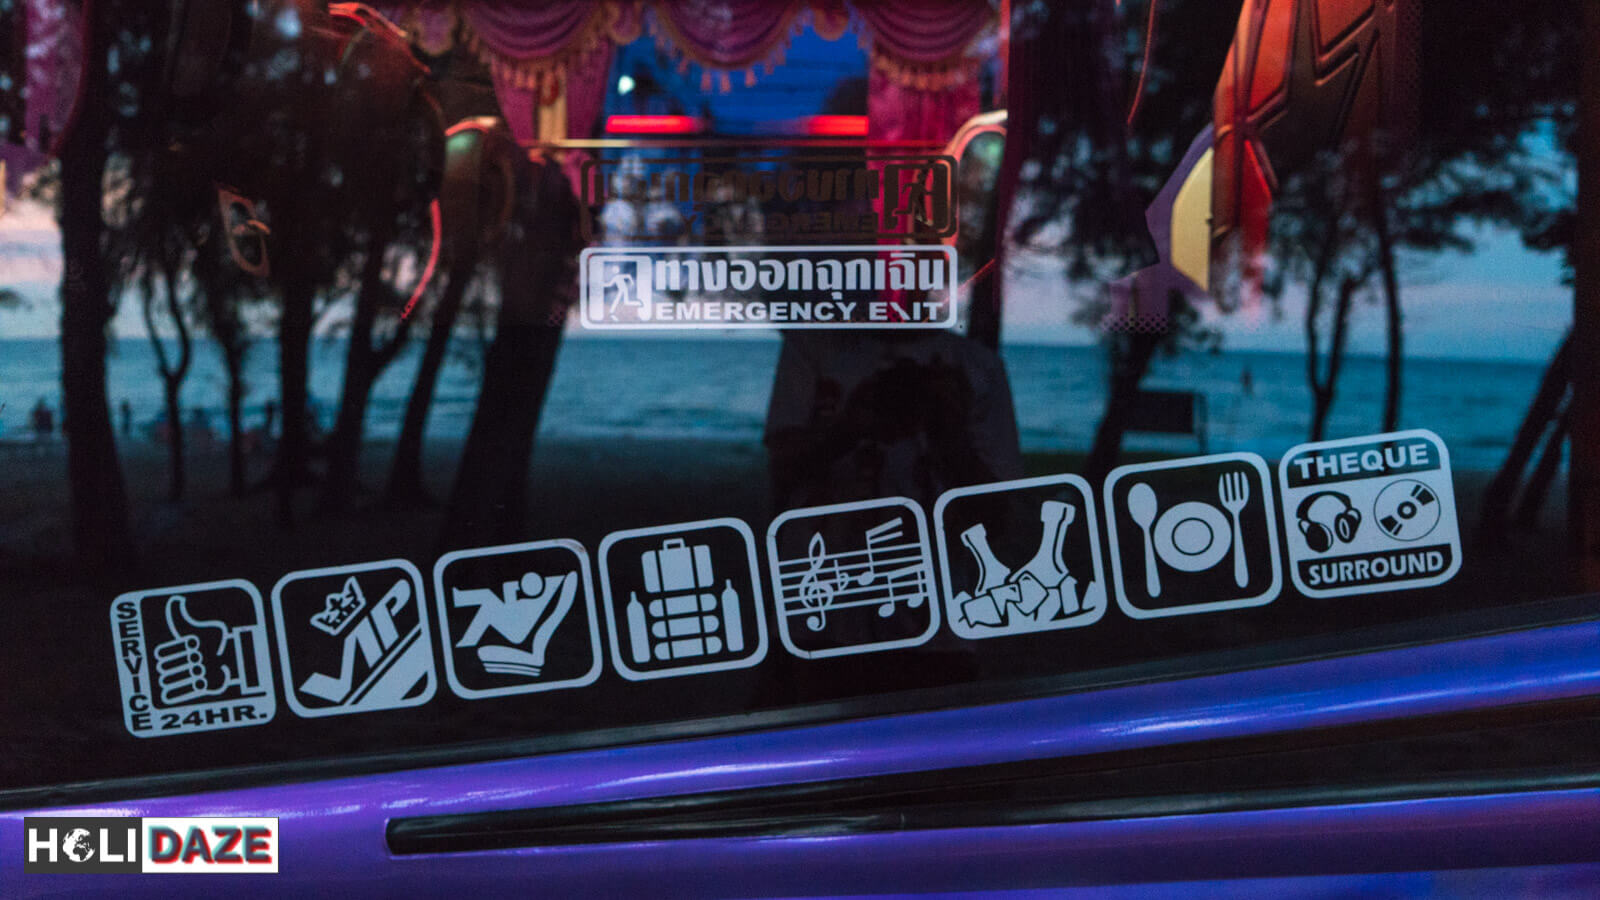 The buses in Thailand come loaded with all the amenities you need for a comfortable journey